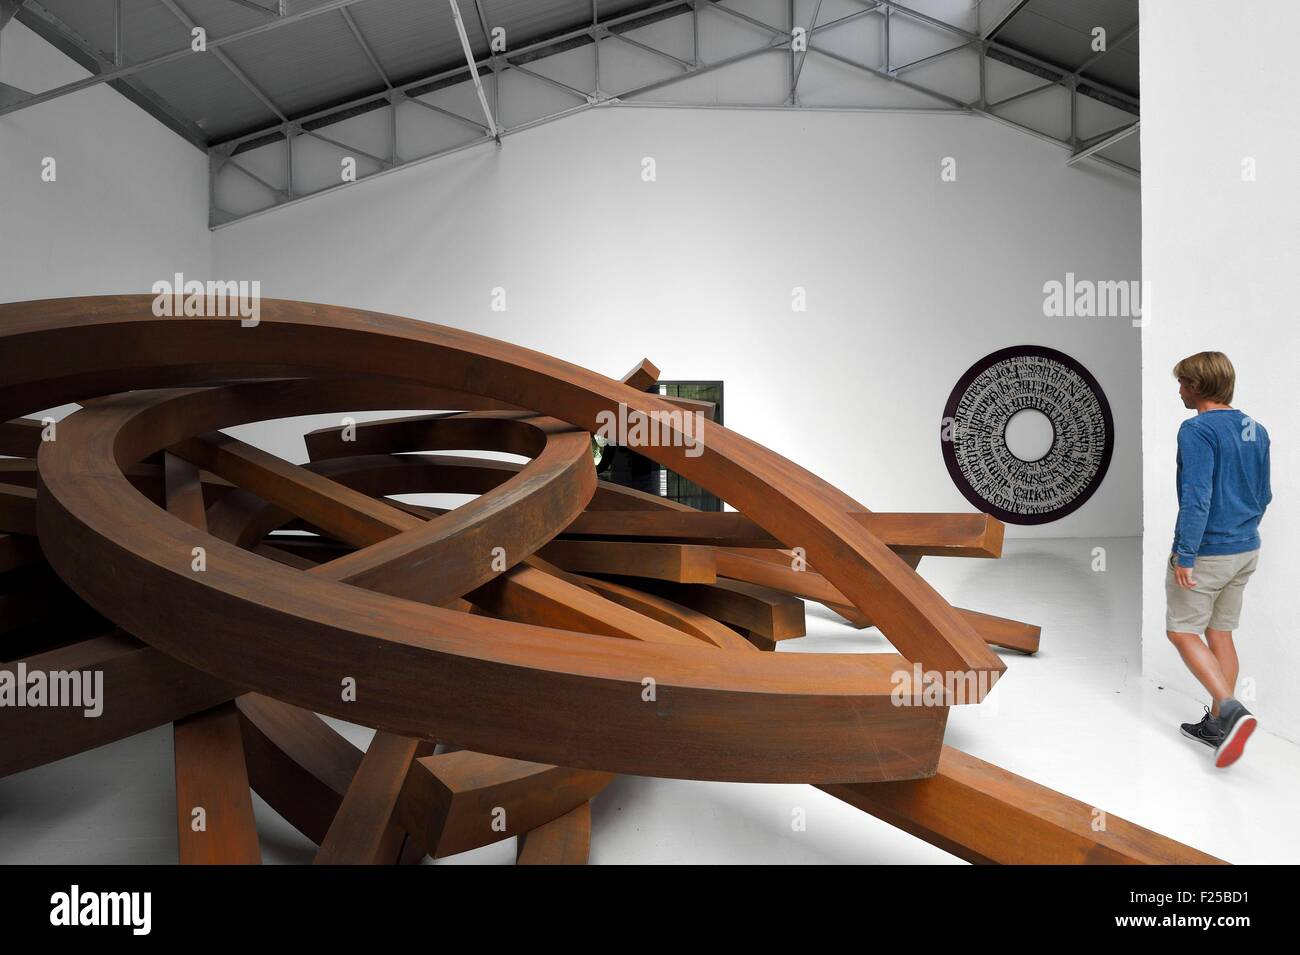 France, Var, Le Muy, Fondation Bernar Venet, Collapse (2014), a monumental piece of 200 tons of steel in the former - Stock Image